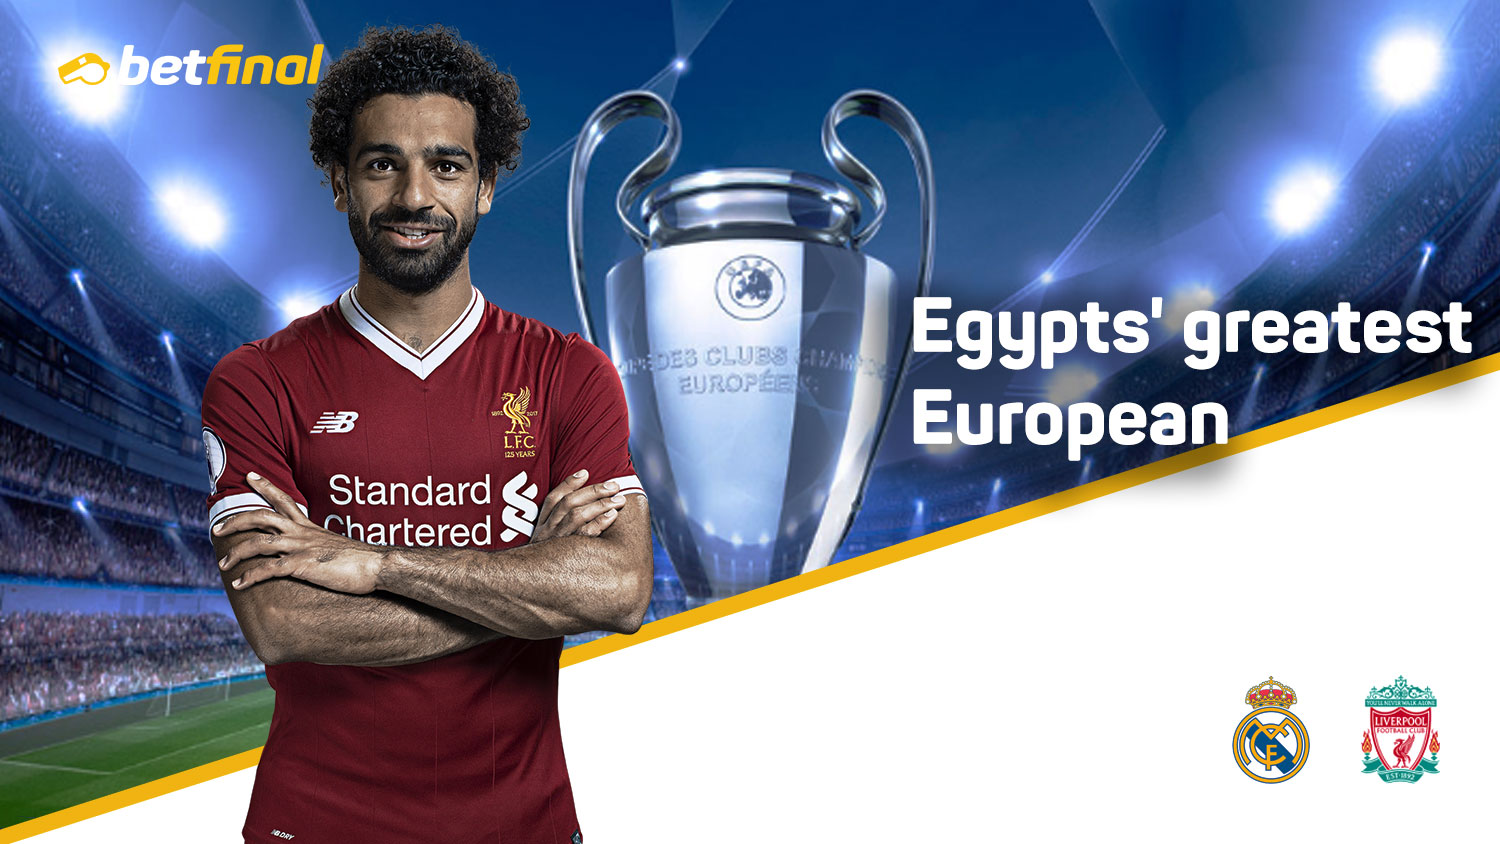 Egypts' greatest European – Liverpool Vs Real Madrid, Olimpiyskiy Stadium, Kiev. UEFA Champions League Final. 8.45pm Saturday, May 26th.